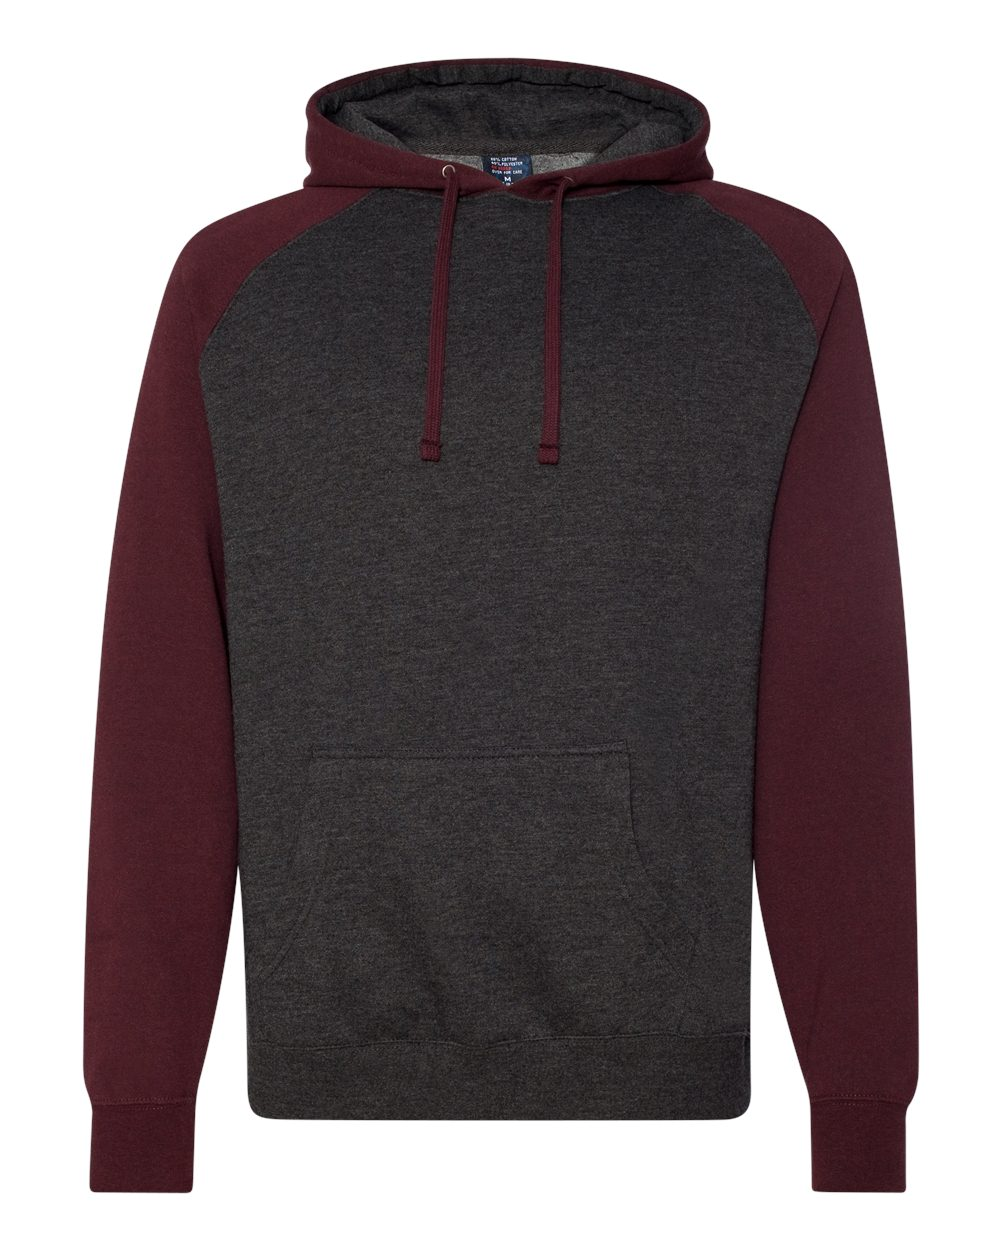 Independent-Trading-Co-Mens-Raglan-Hooded-Pullover-Sweatshirt-IND40RP-up-to-3XL miniature 12